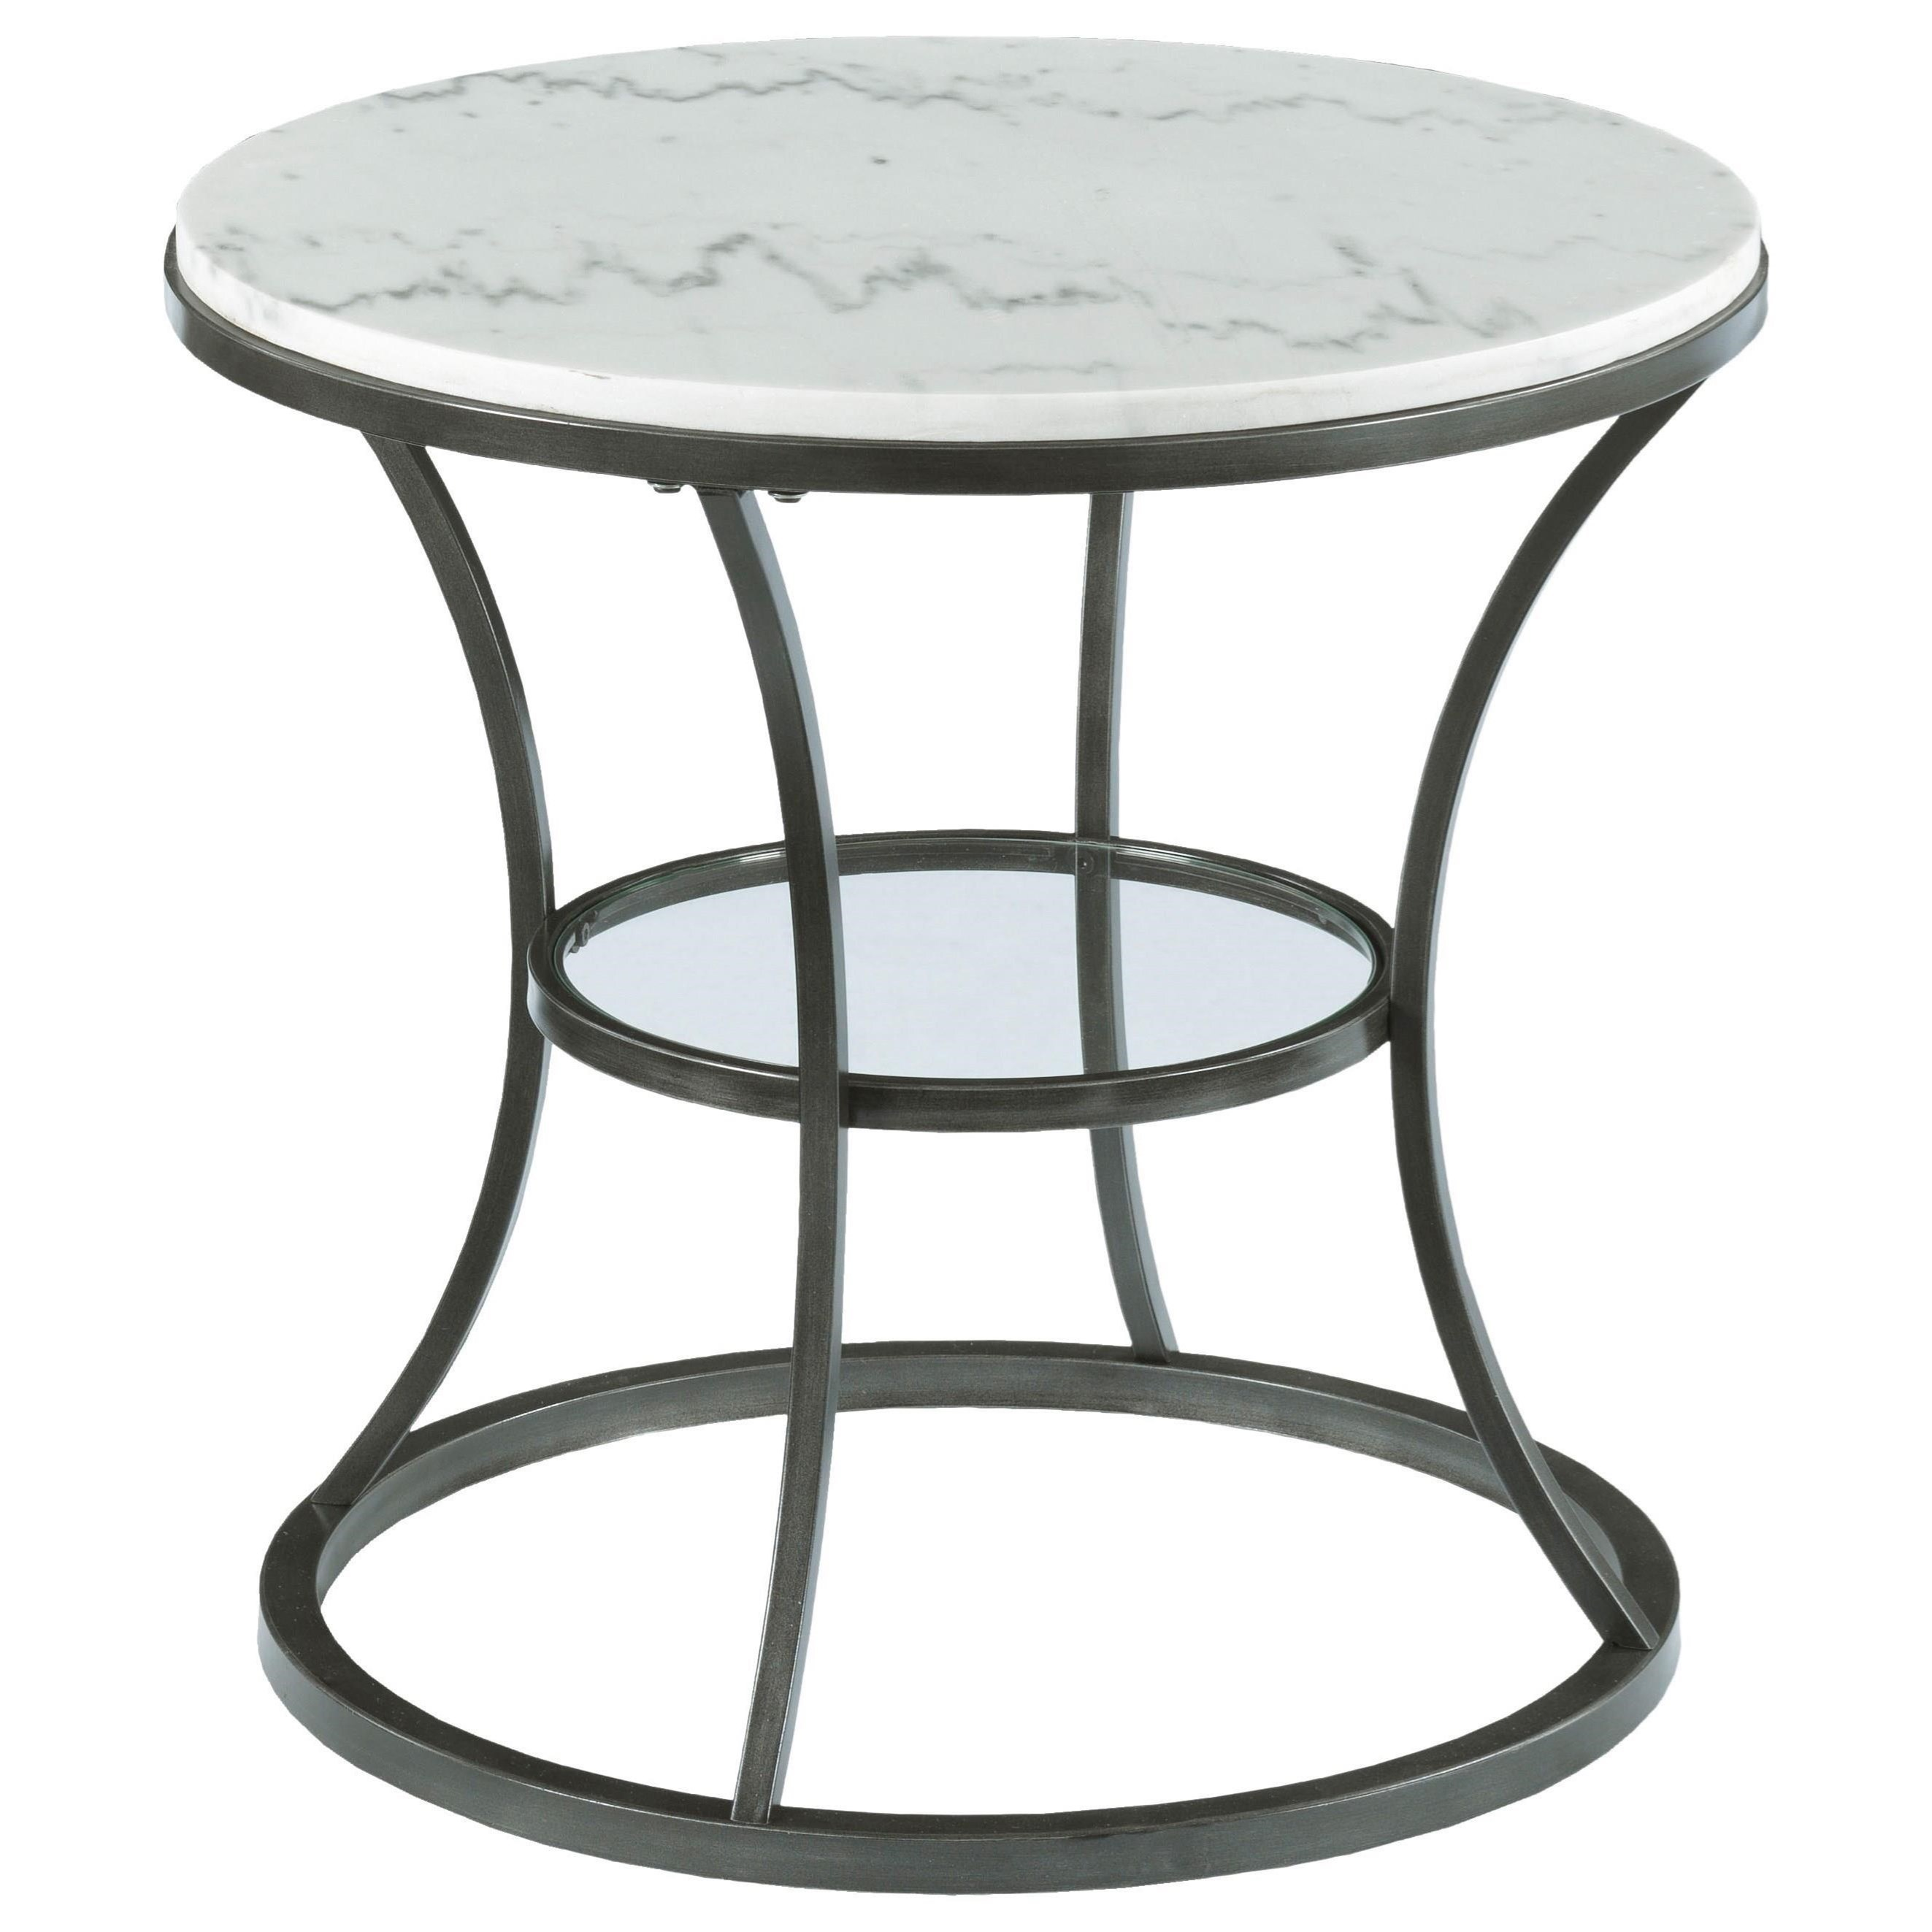 hammary impact round end table with marble top and glass copper accent set wicker garden furniture small black nightstand utility dark wood side ashley desk navy white chairs